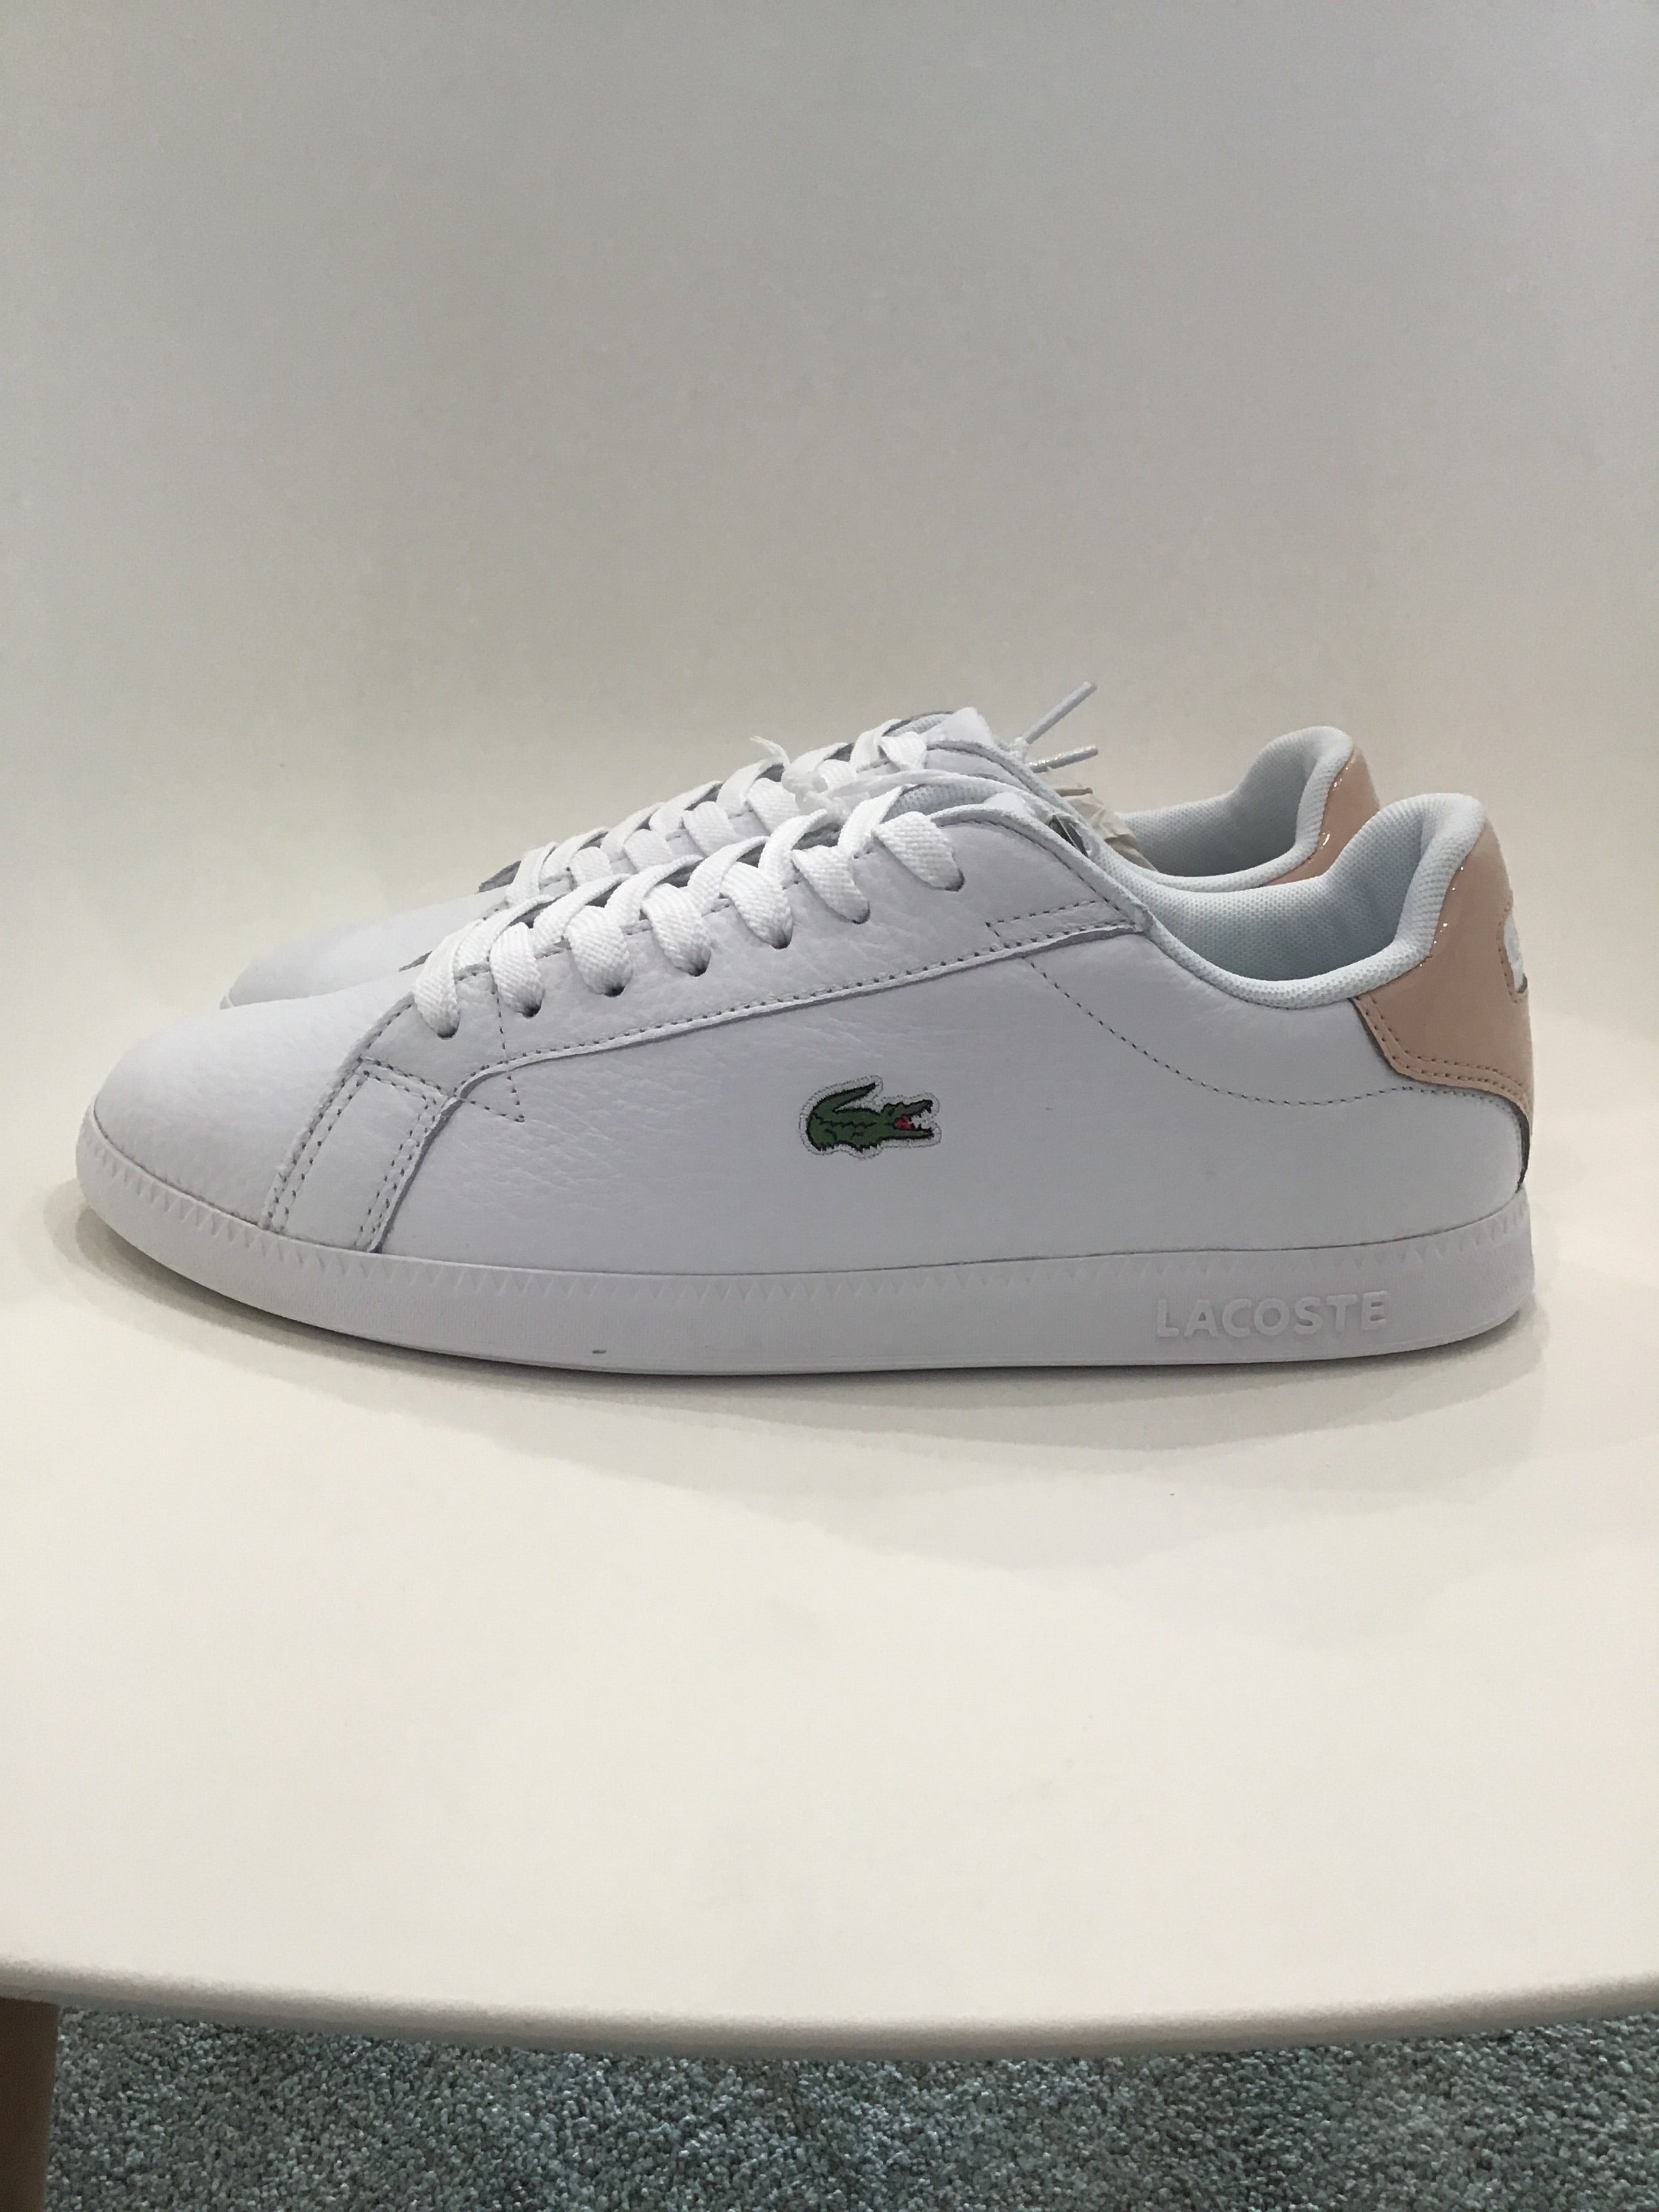 Lacoste - The Graduate - White/Natural